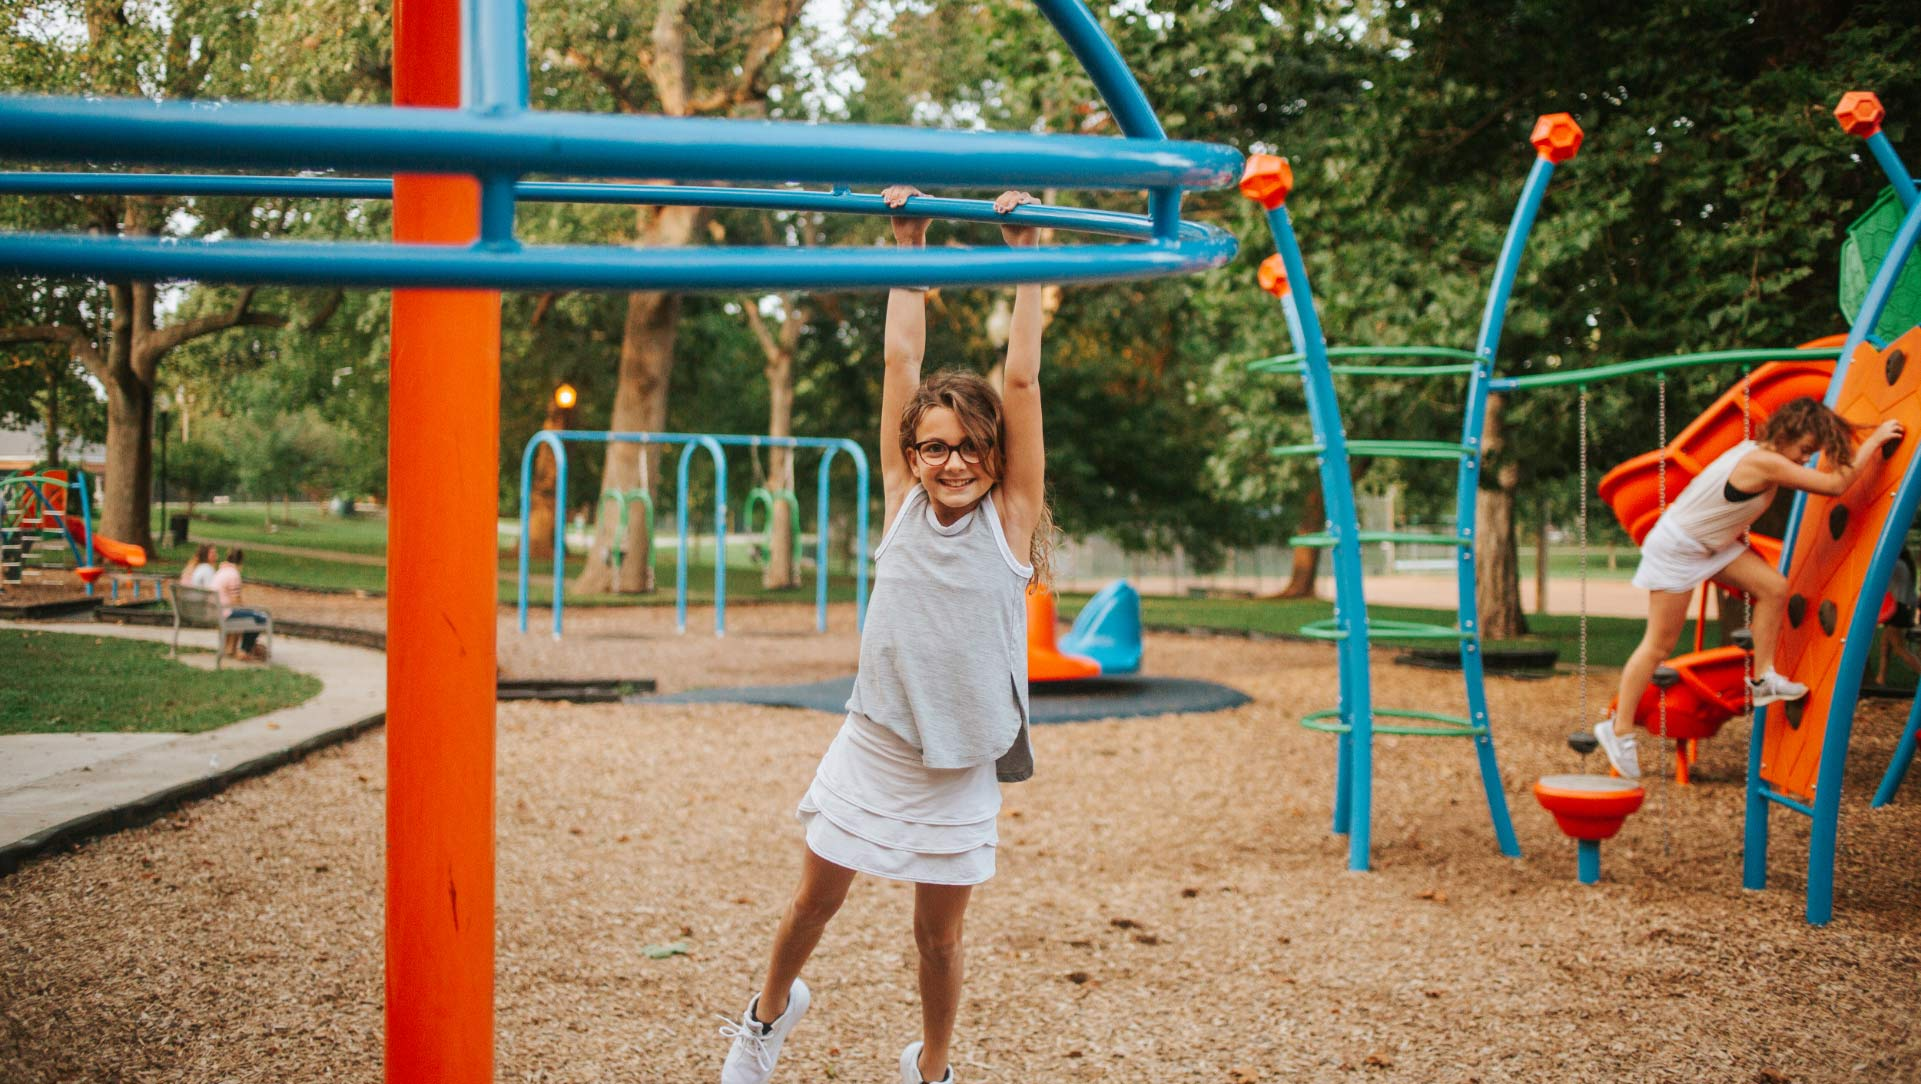 Gabriella Buffano, approximately 10 years old, holds onto a piece of playground equipment, swinging by her arms and grinning. She is wearing a white skirt, a gray tank top, and glasses.